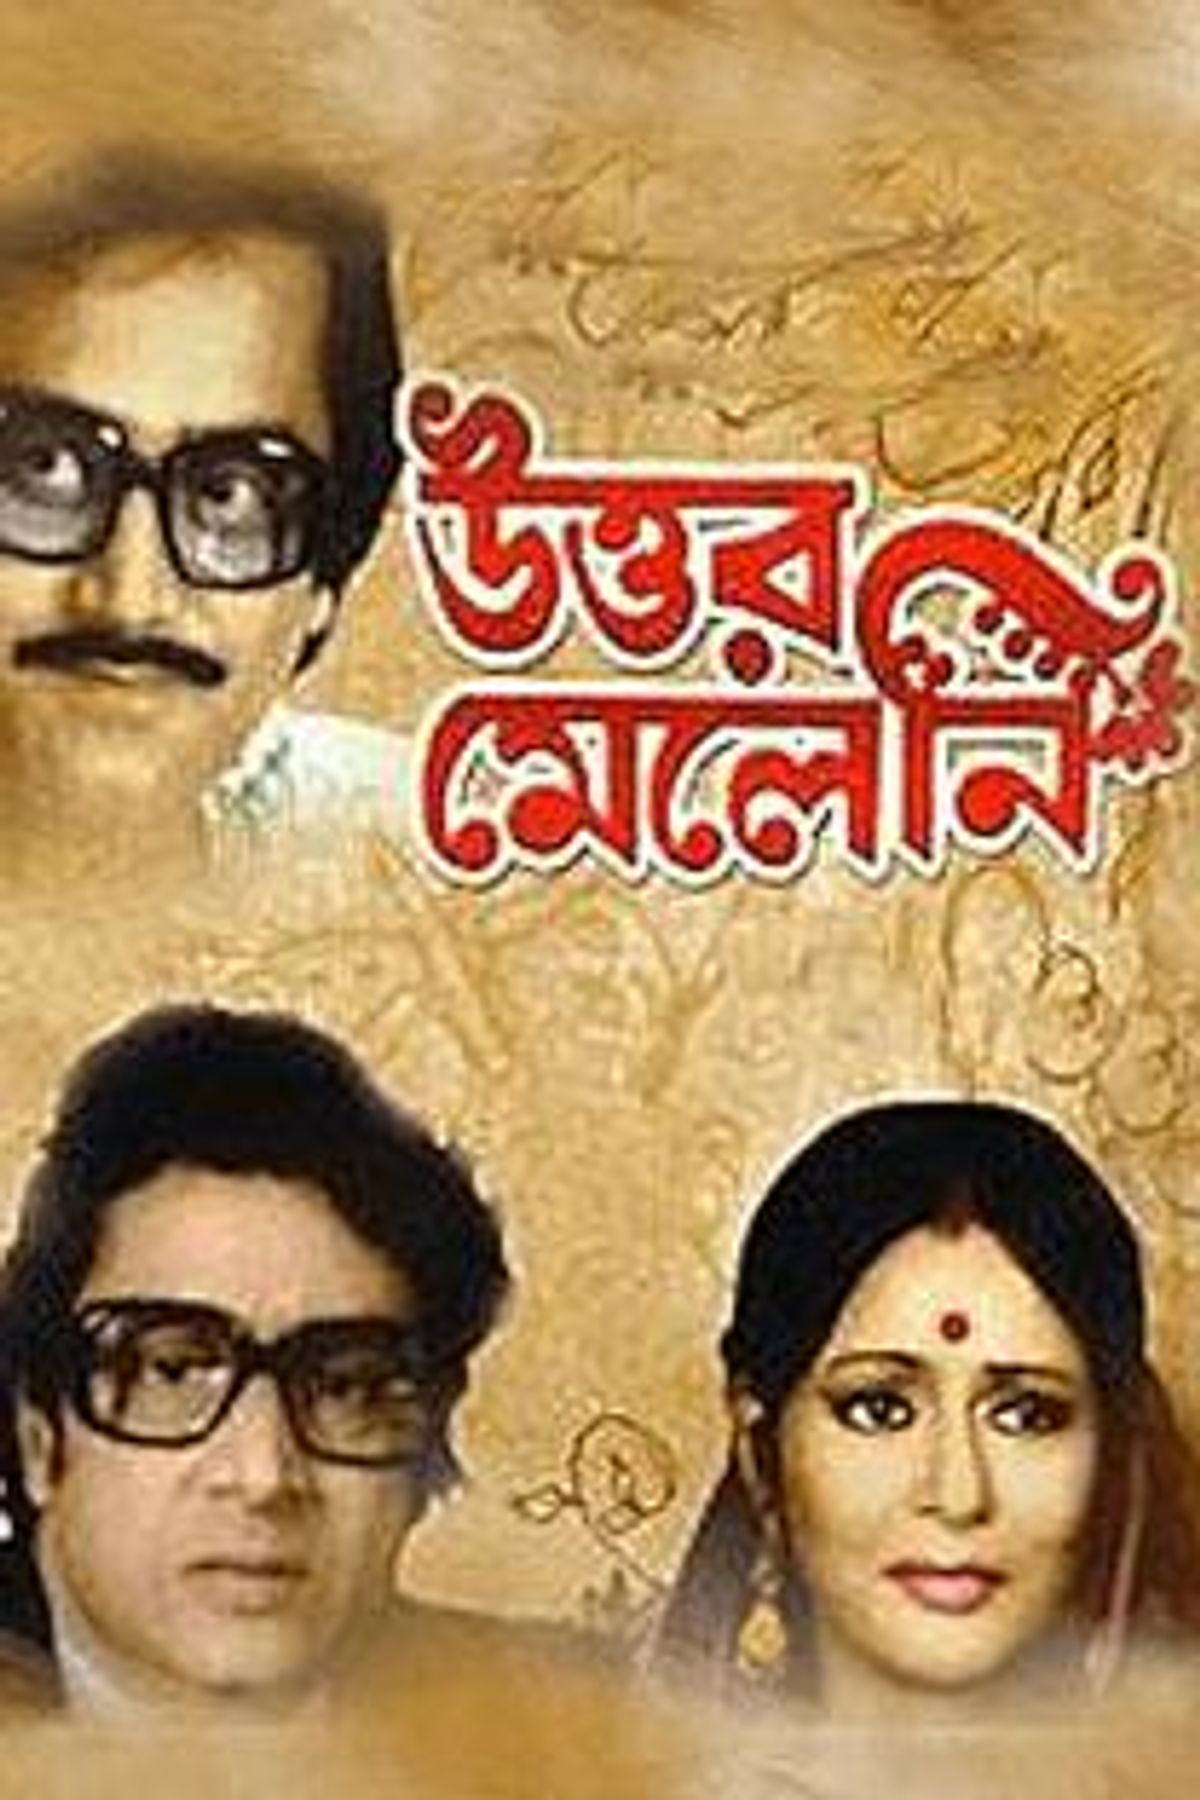 Uday Bhattacharya Best Movies, TV Shows and Web Series List